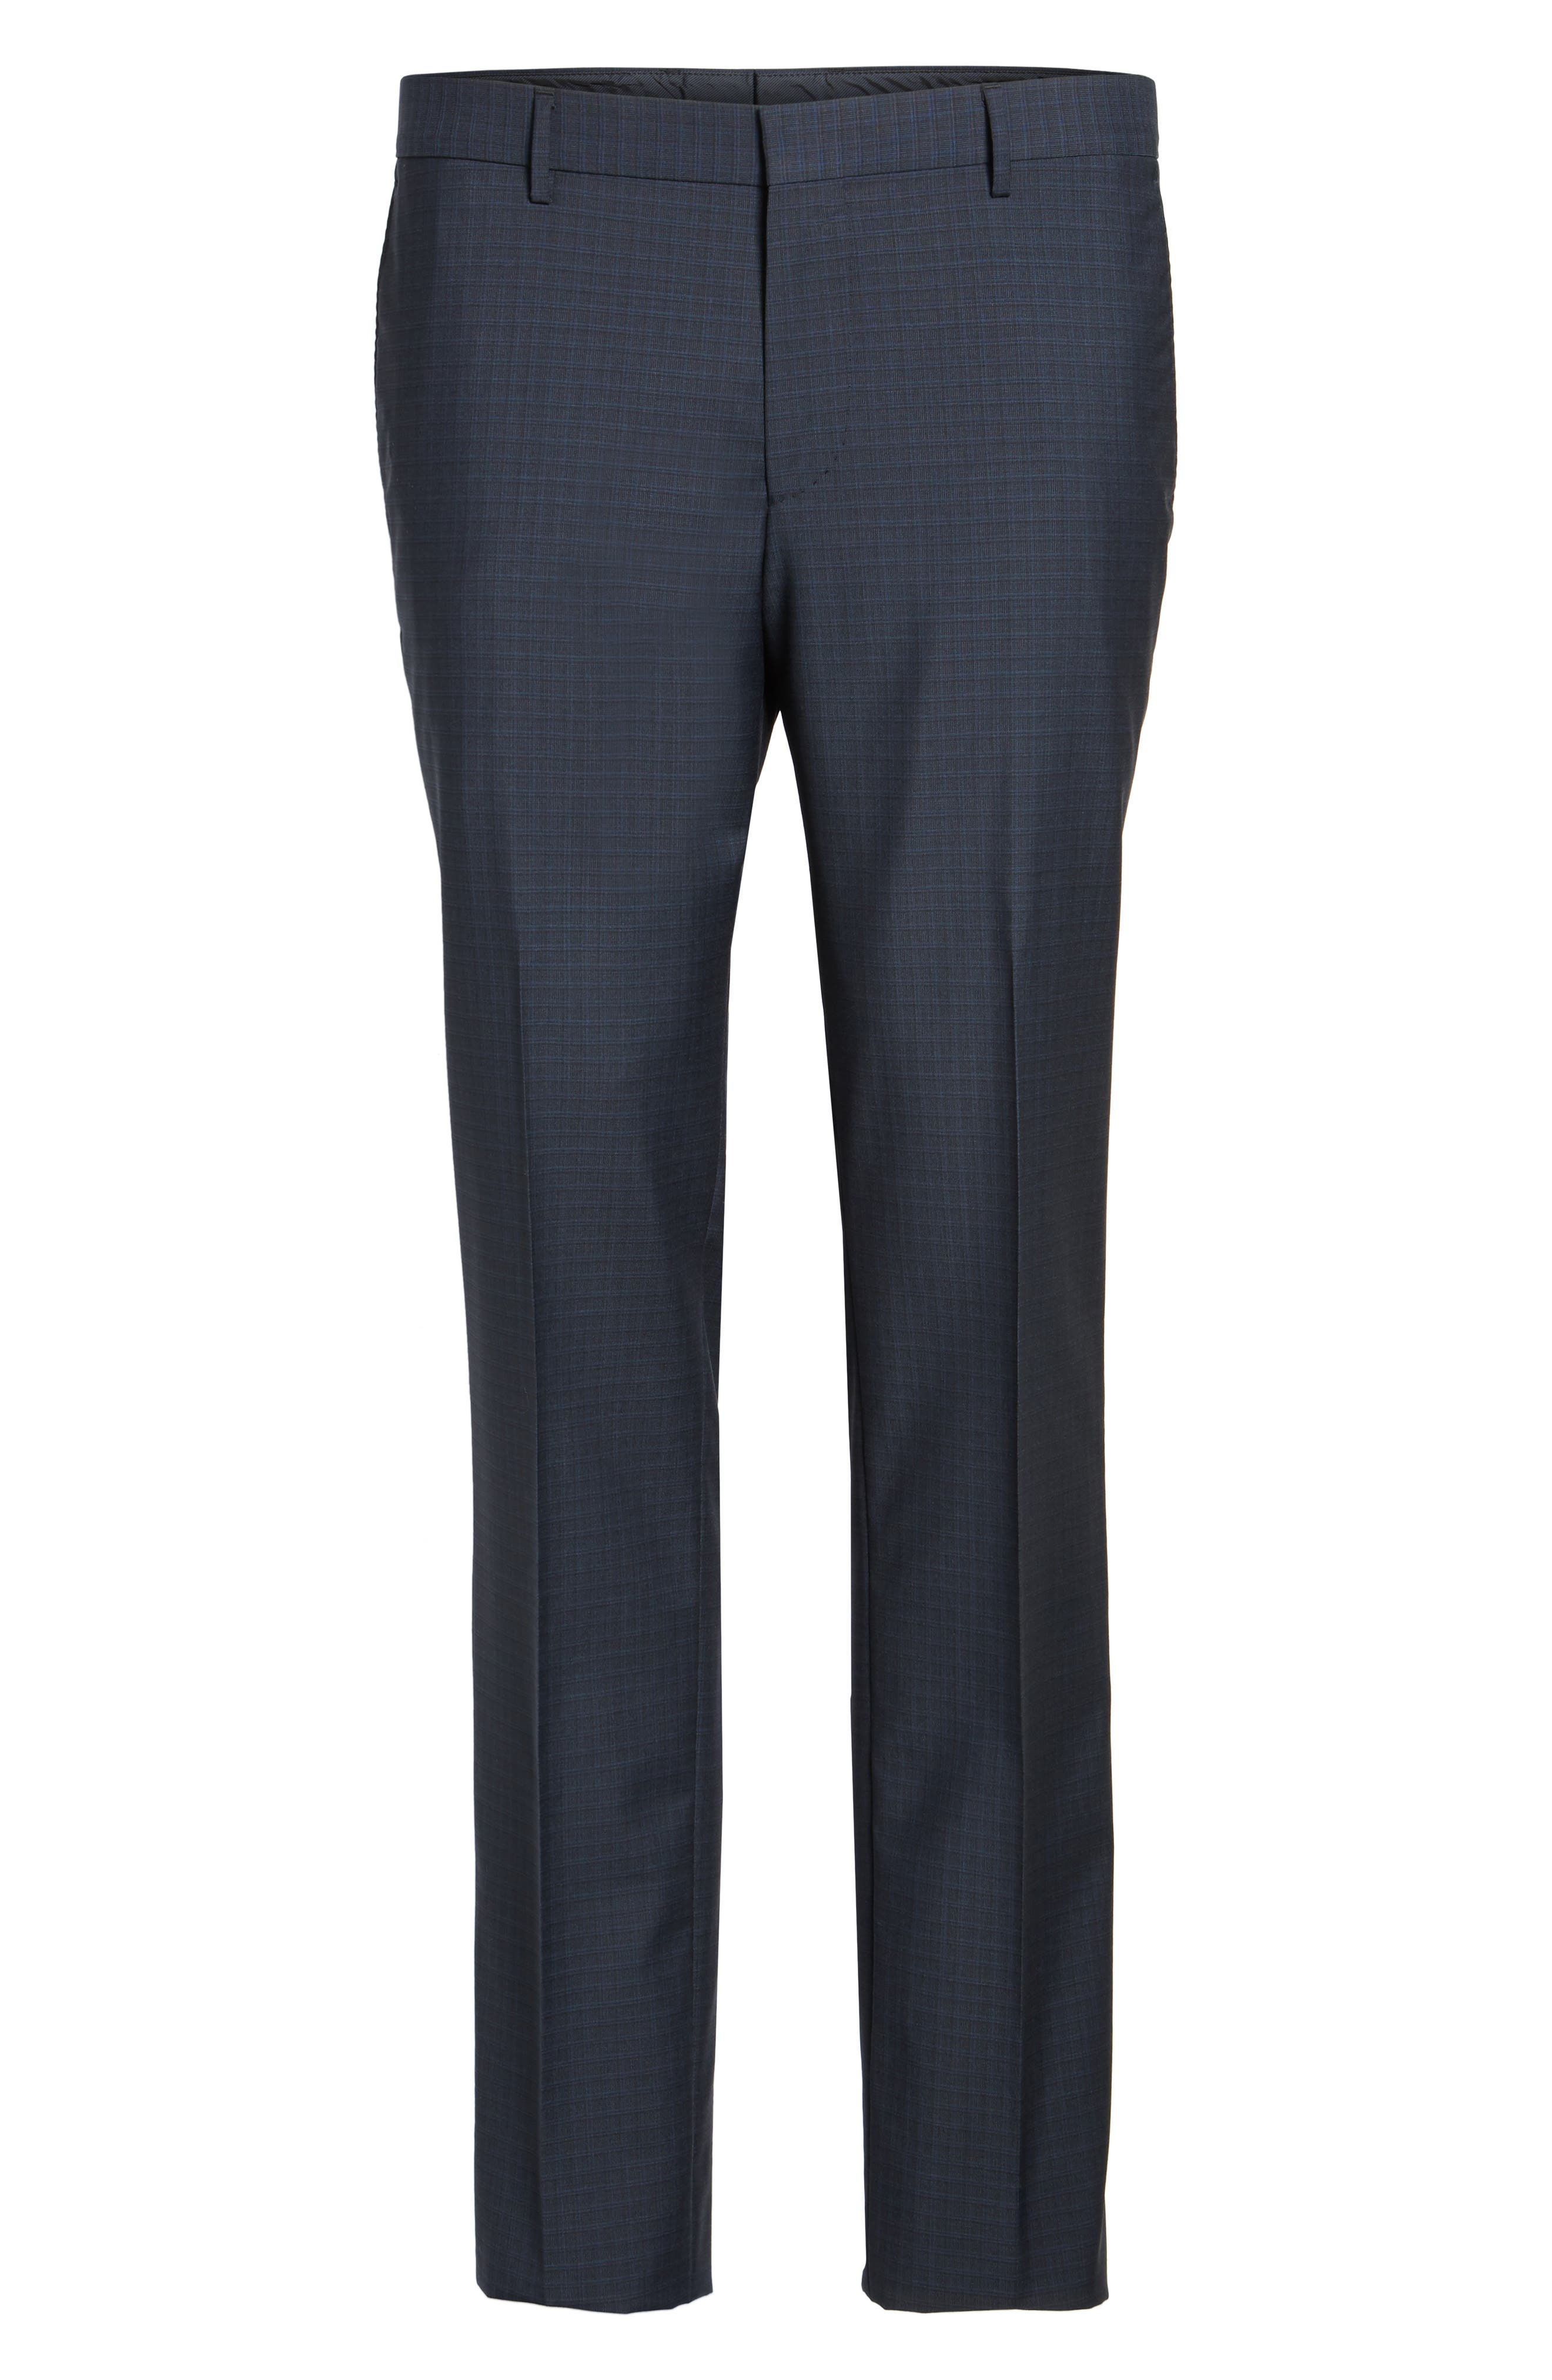 Benso Flat Front Check Wool Trousers,                             Alternate thumbnail 6, color,                             Navy